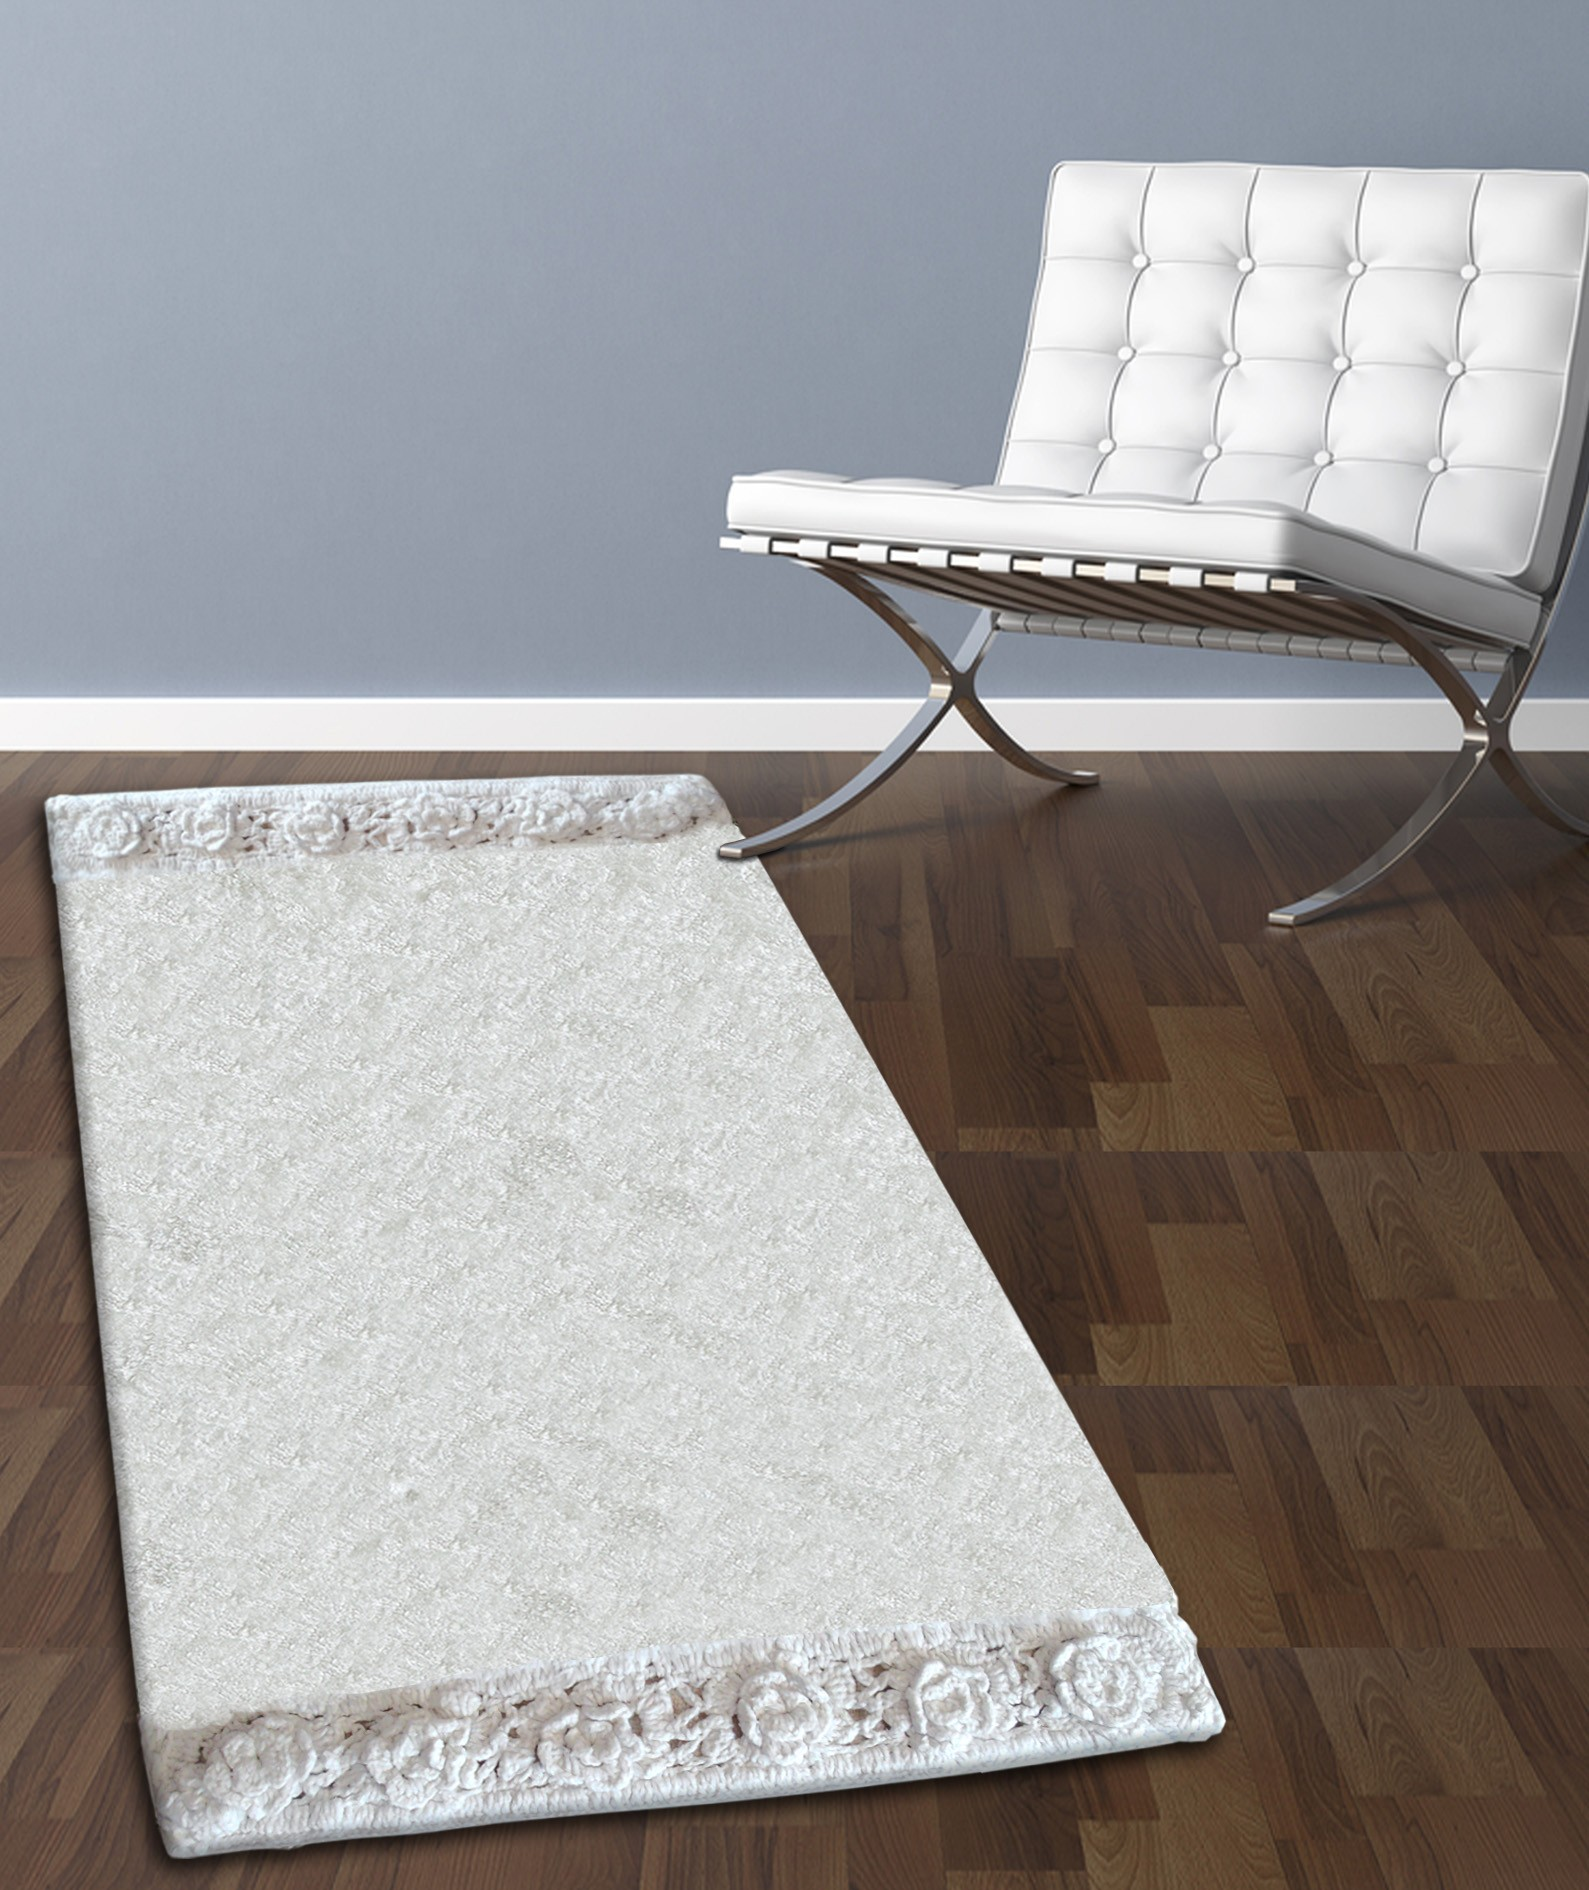 Ταπέτο Μπάνιου San Lorentzo 925 Double Lace White 50×80